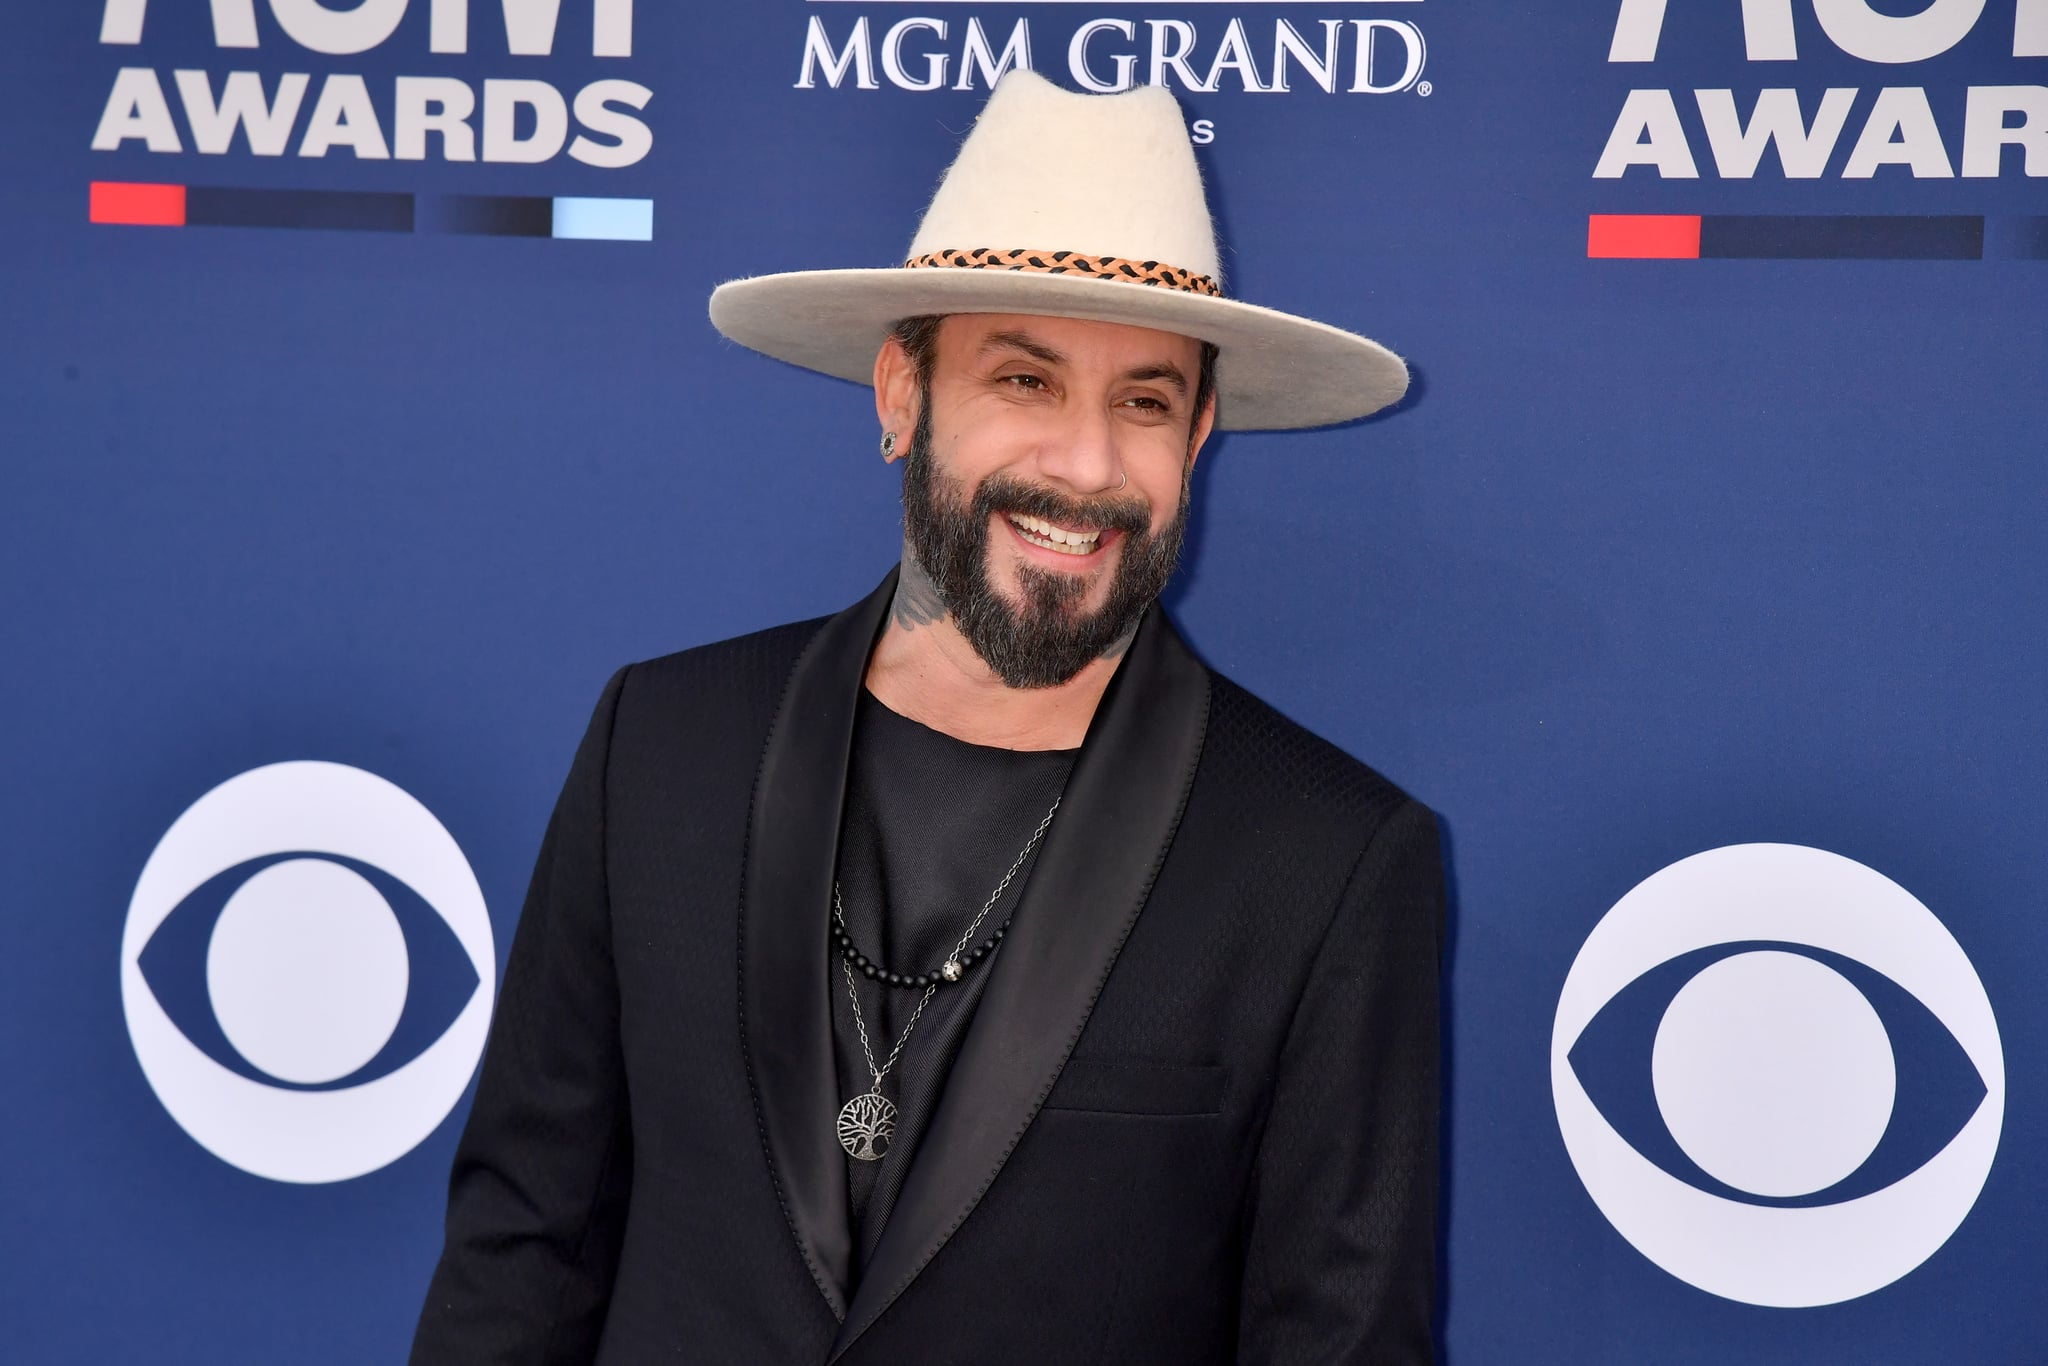 LAS VEGAS, NEVADA - APRIL 07: AJ McLean attends the 54th Academy Of Country Music Awards at MGM Grand Hotel & Casino on April 07, 2019 in Las Vegas, Nevada. (Photo by Jeff Kravitz/FilmMagic)